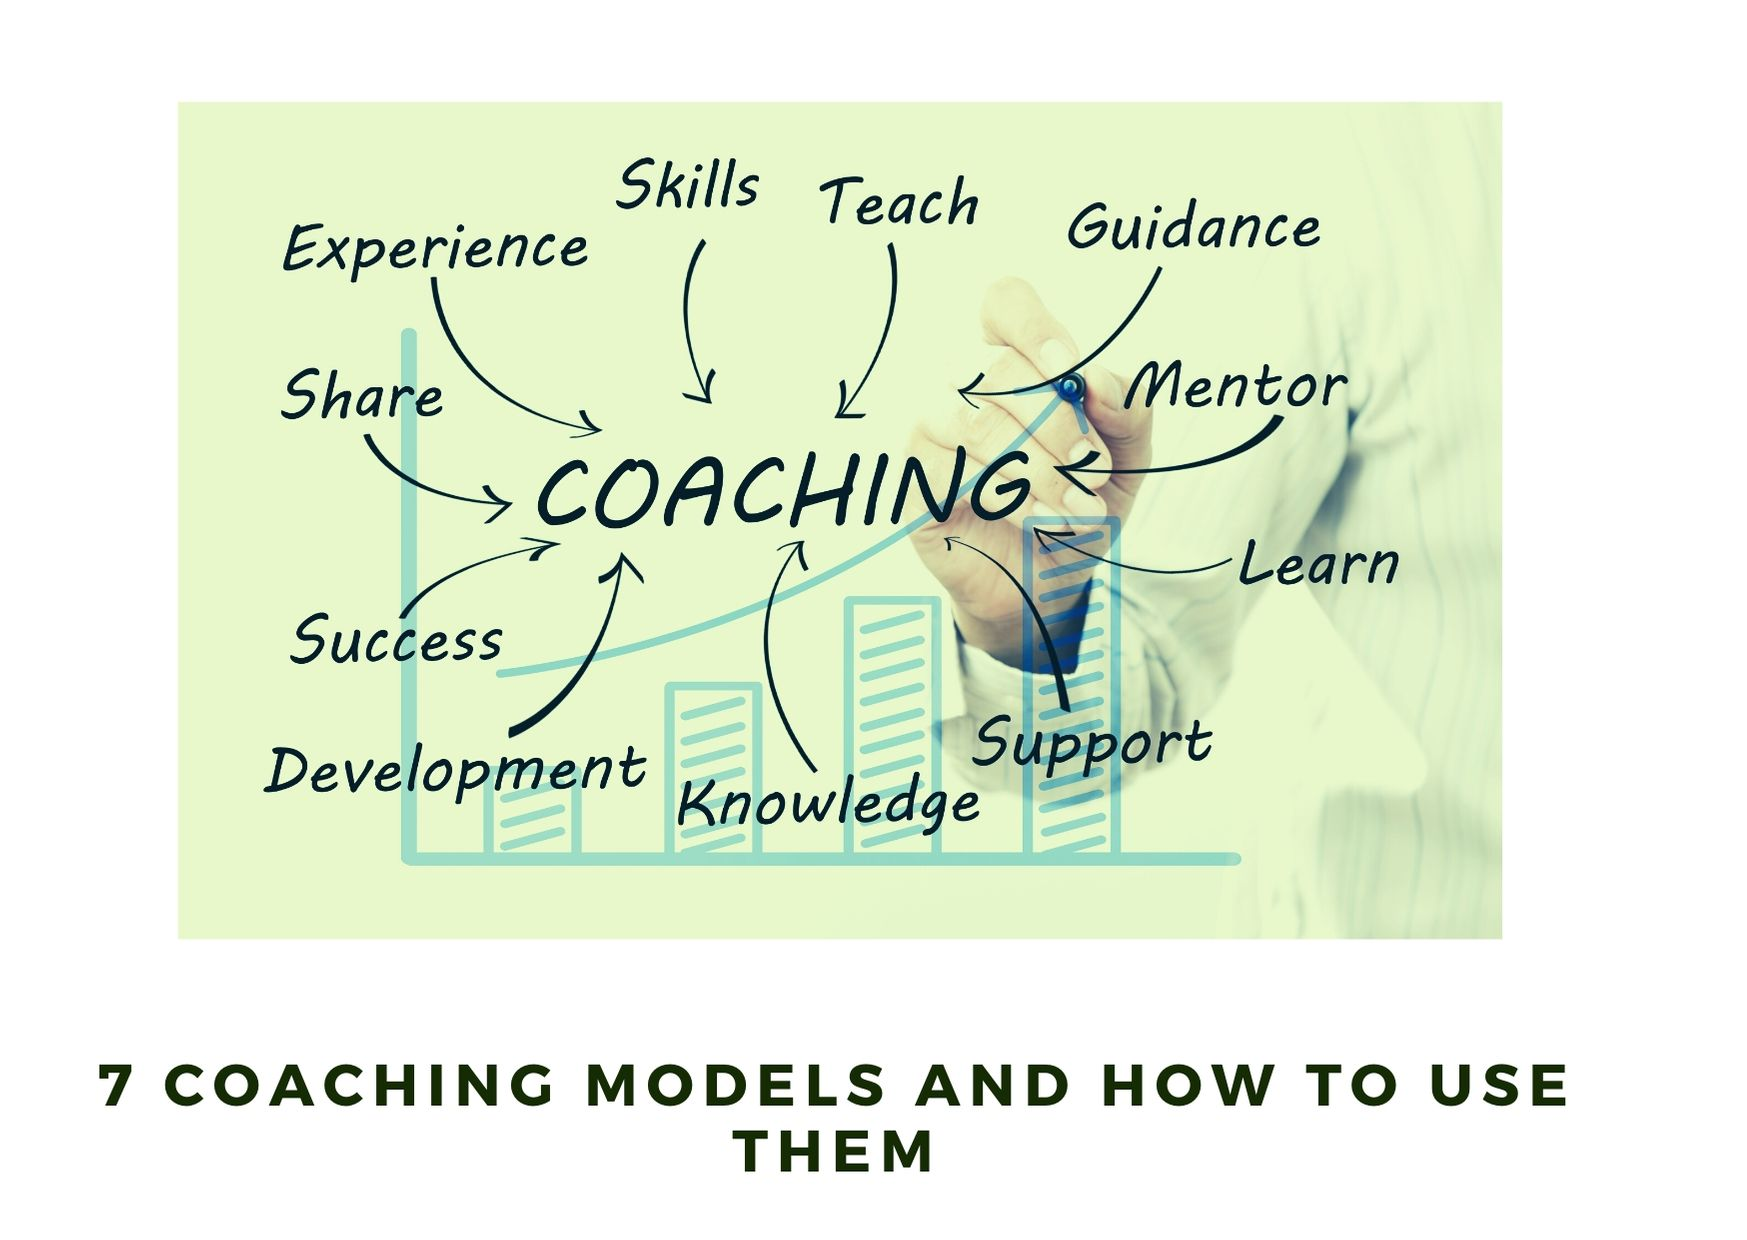 7 Coaching models and how to use them